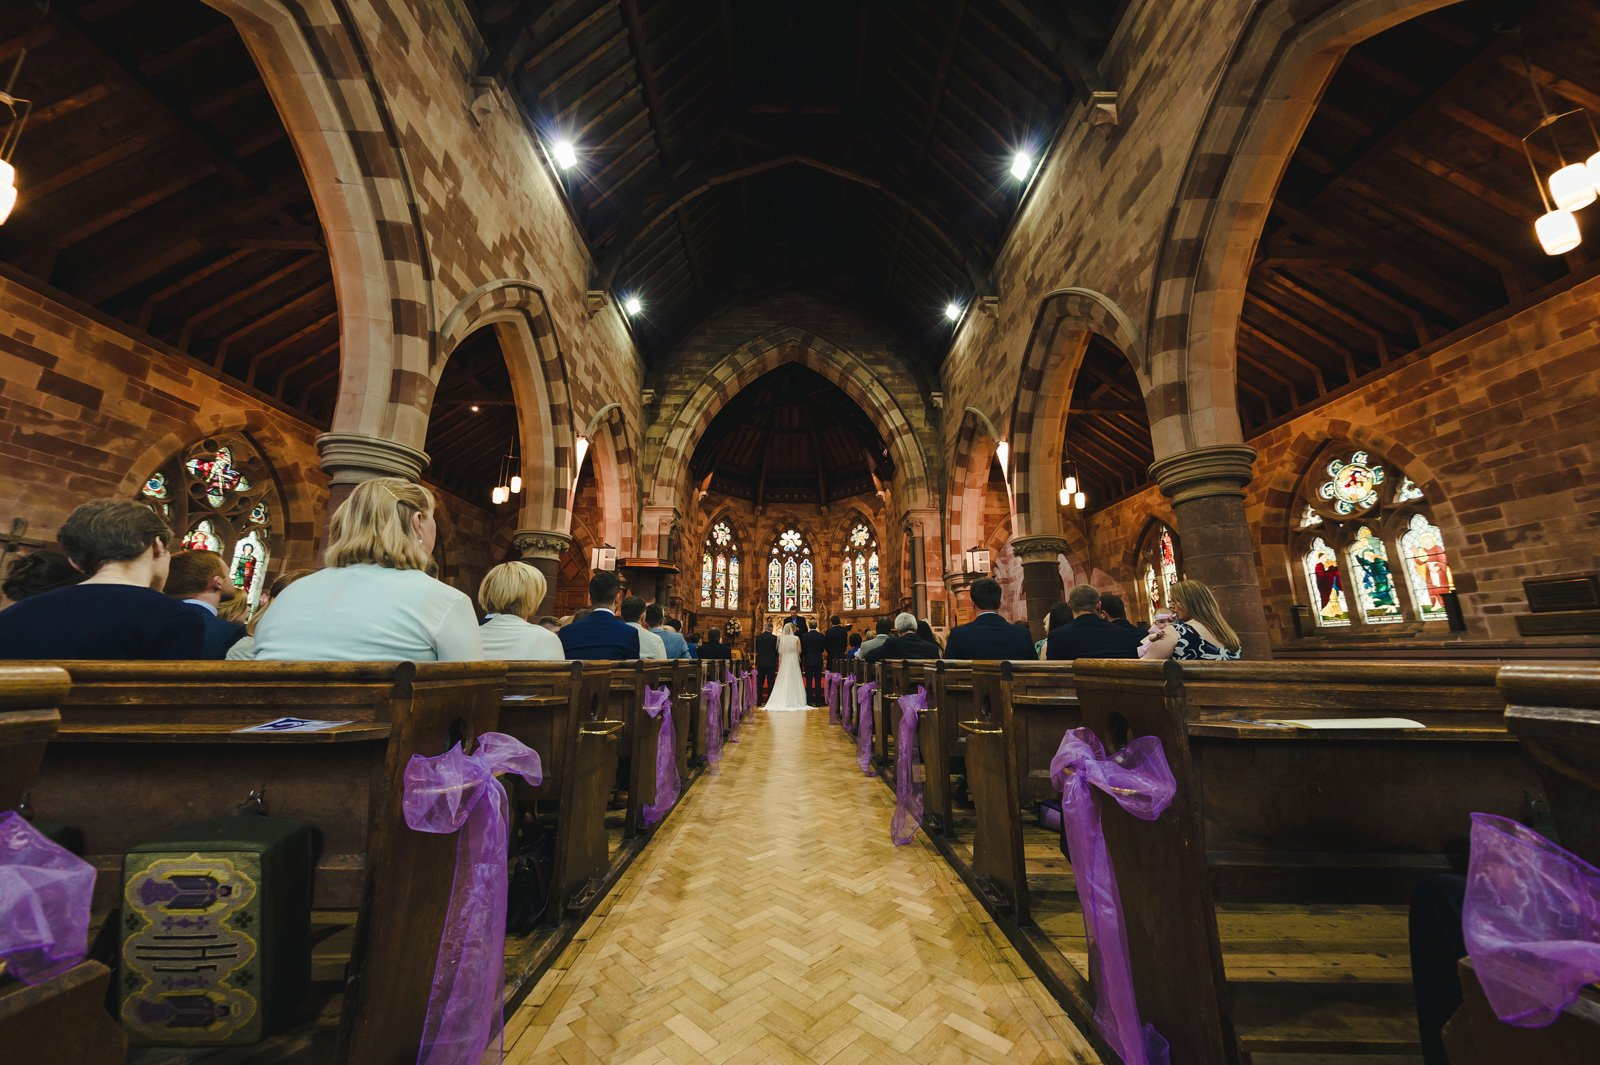 millers of netley wedding 23 - Millers Of Netley wedding, Dorrington, Shrewsbury | Emma + Ben